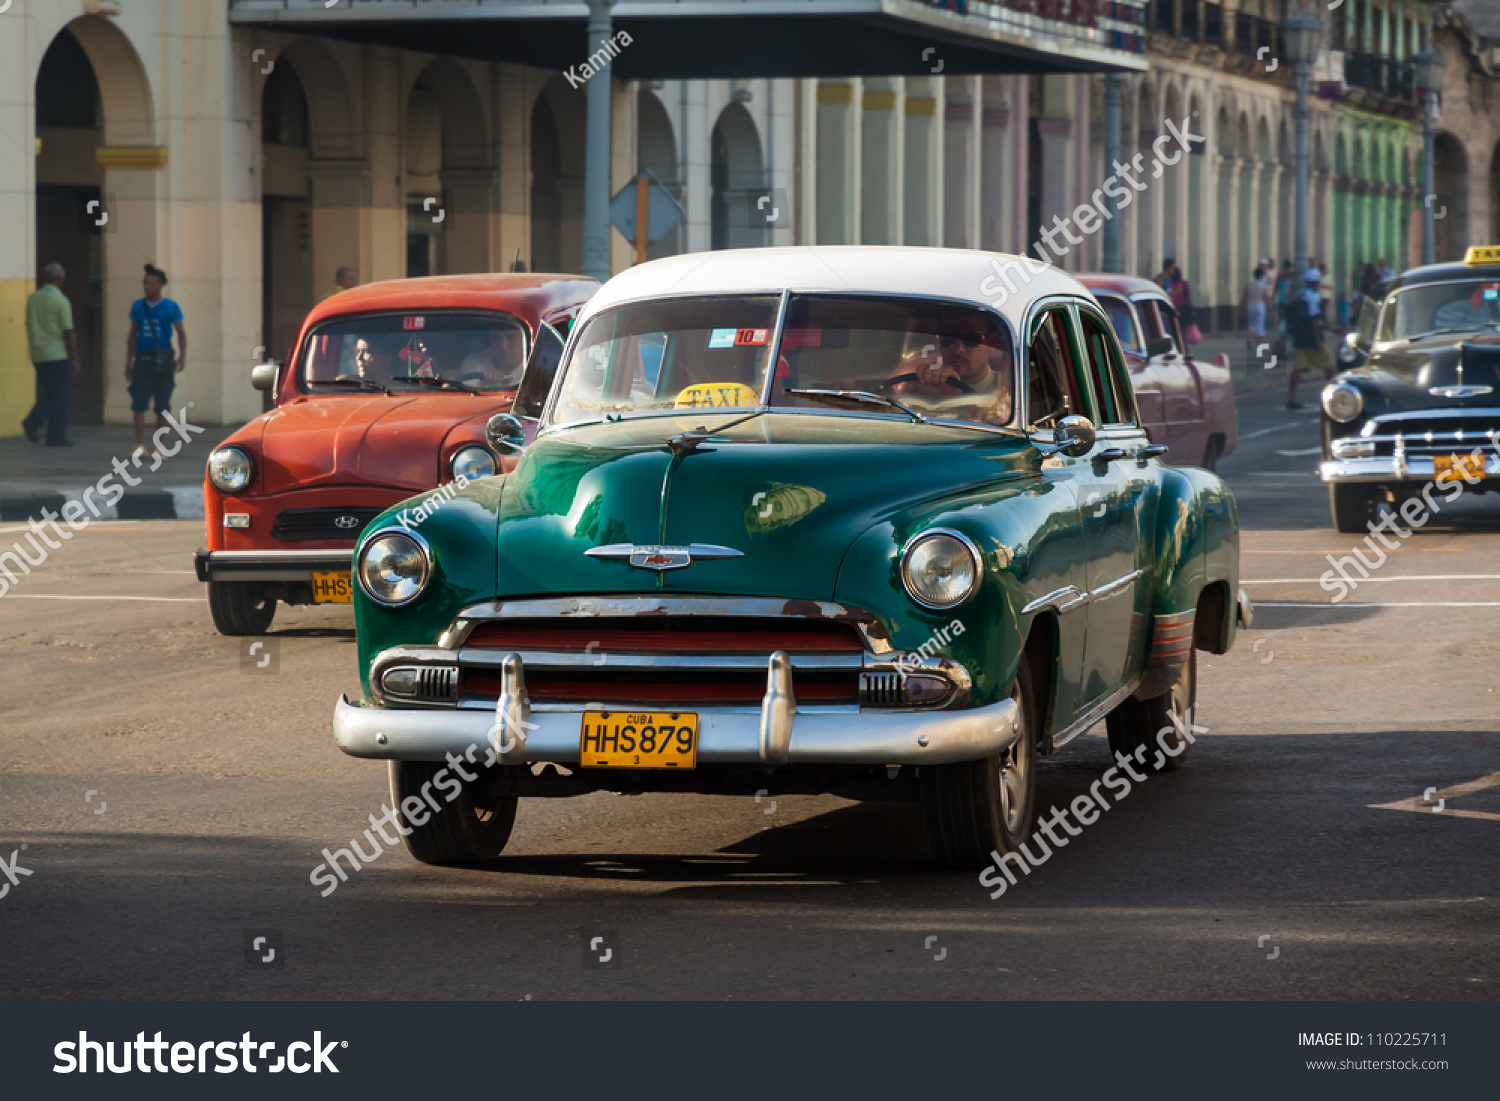 Havanaaugust 14several Old Classic Cars August Stock Photo 110225711 ...